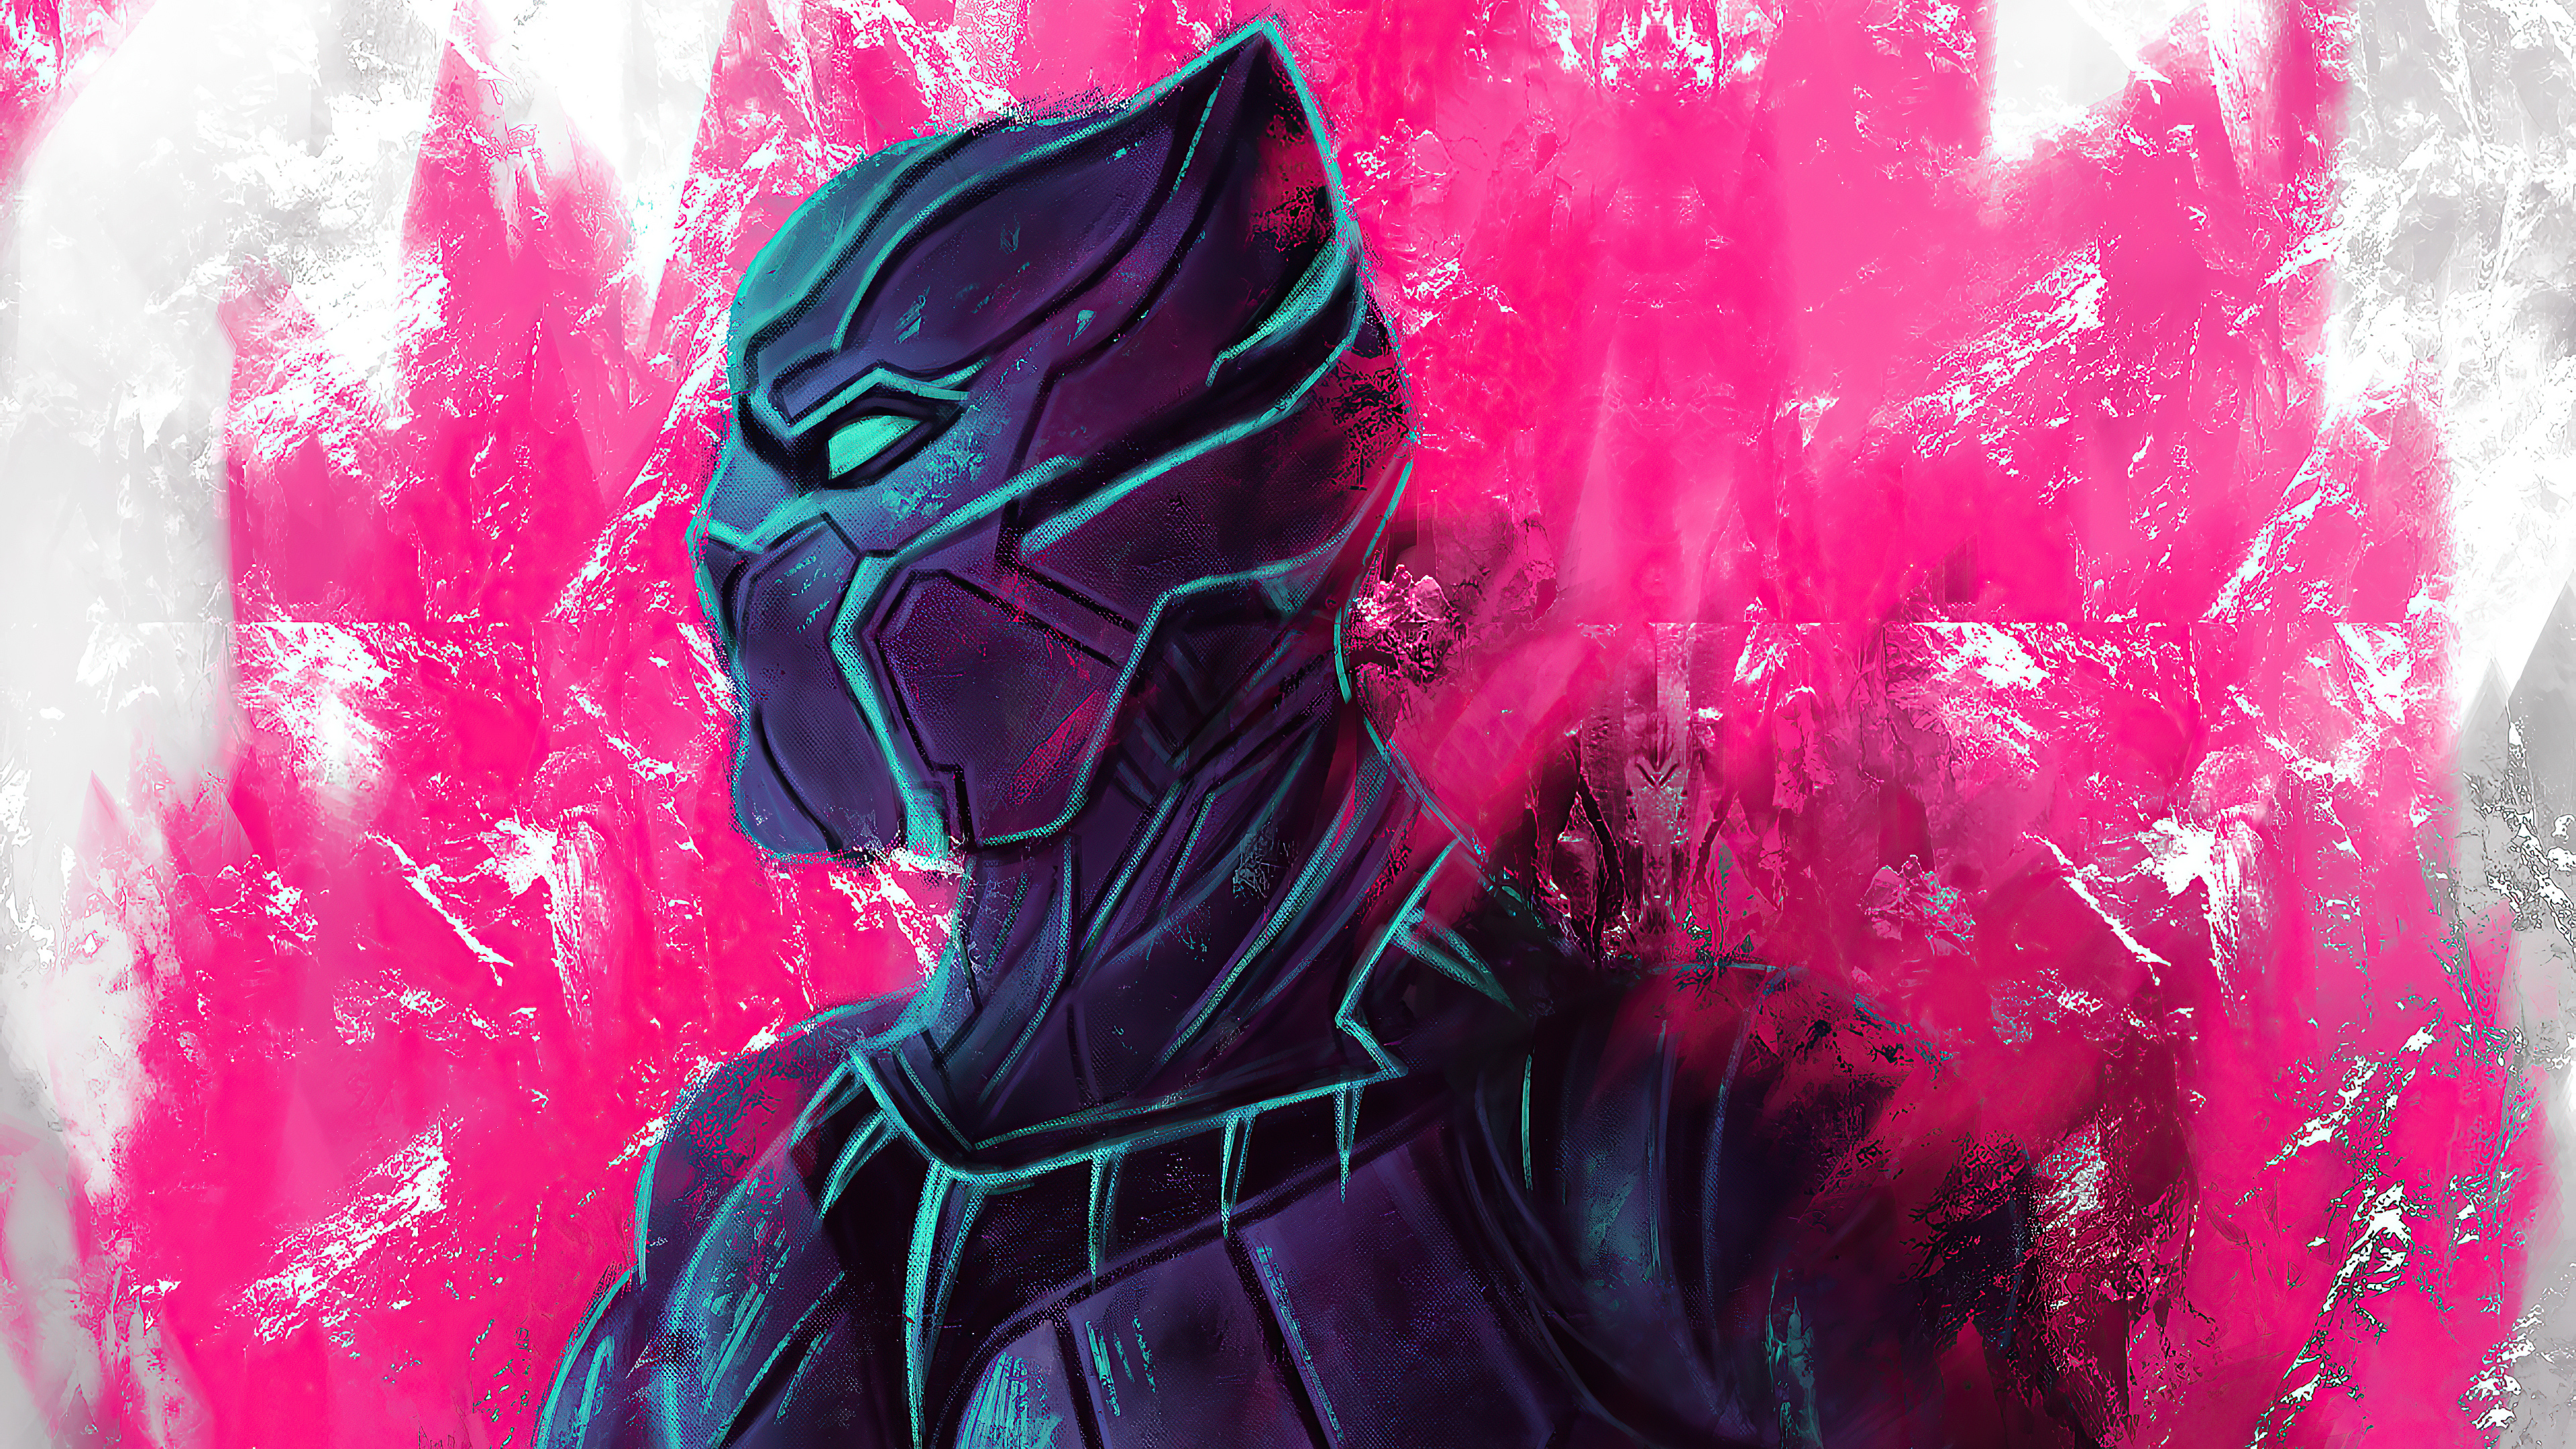 1920x1080 Black Panther King Laptop Full Hd 1080p Hd 4k Wallpapers Images Backgrounds Photos And Pictures